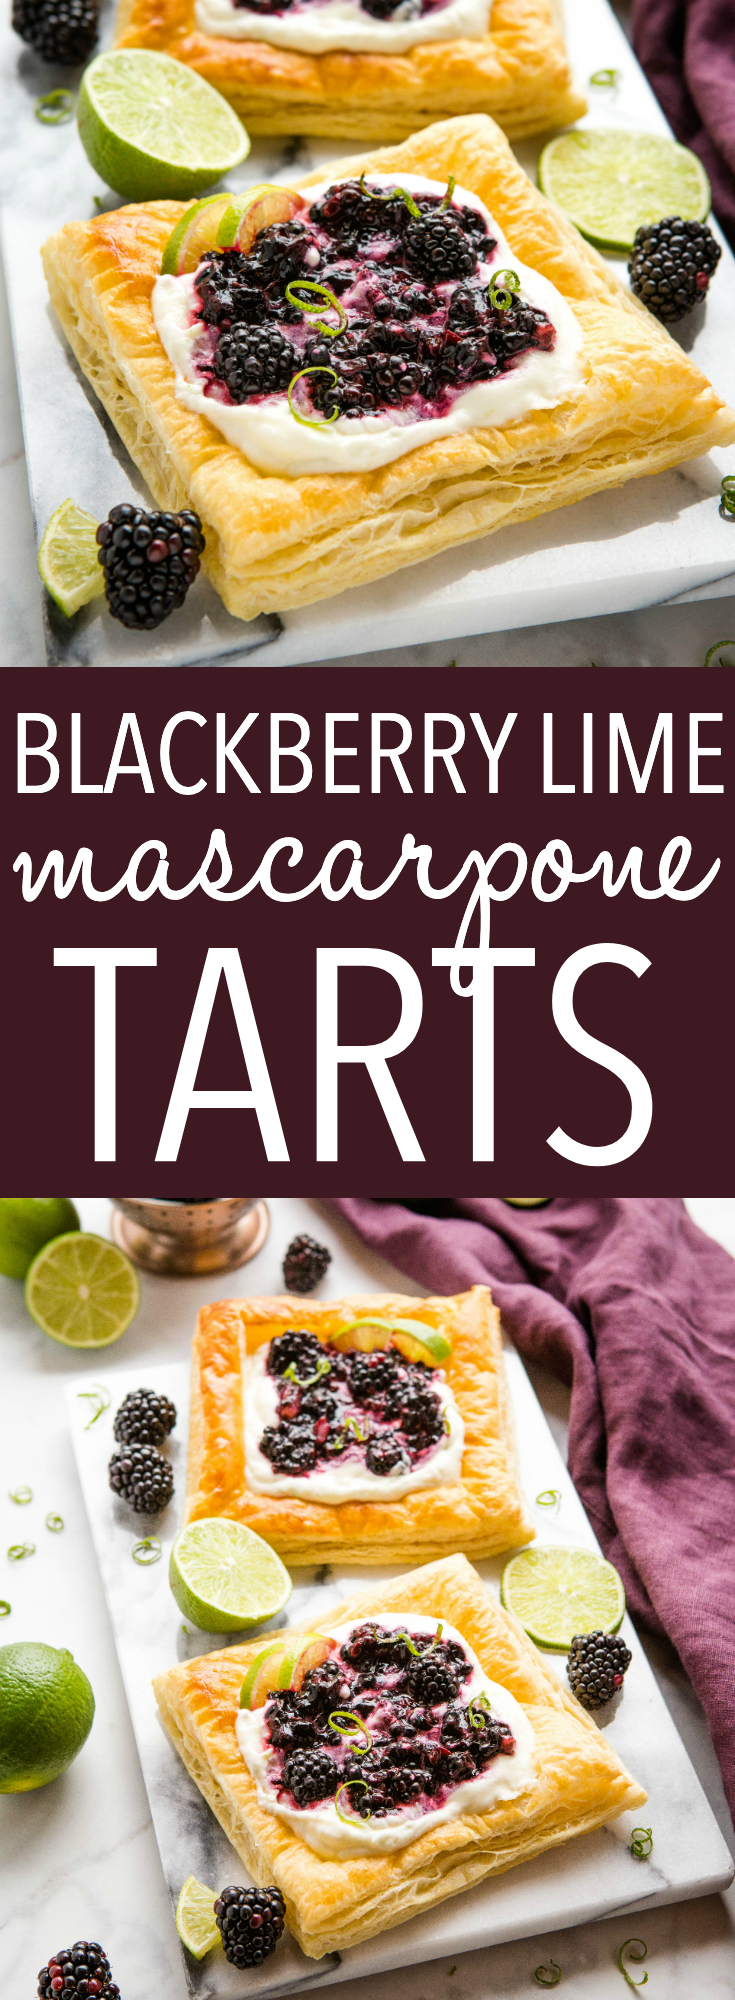 These Blackberry Lime Mascarpone Tarts are light-tasting, citrusy and sweet, and a delightful treat that's perfect for breakfast, brunch or even dessert. They're easy to make and feature a creamy and delicious filling with fresh, juicy blackberries! Recipe from thebusybaker.ca! #tarts #danish #brunch #breakfast #blackberries #lime #dessert #puffpastry via @busybakerblog